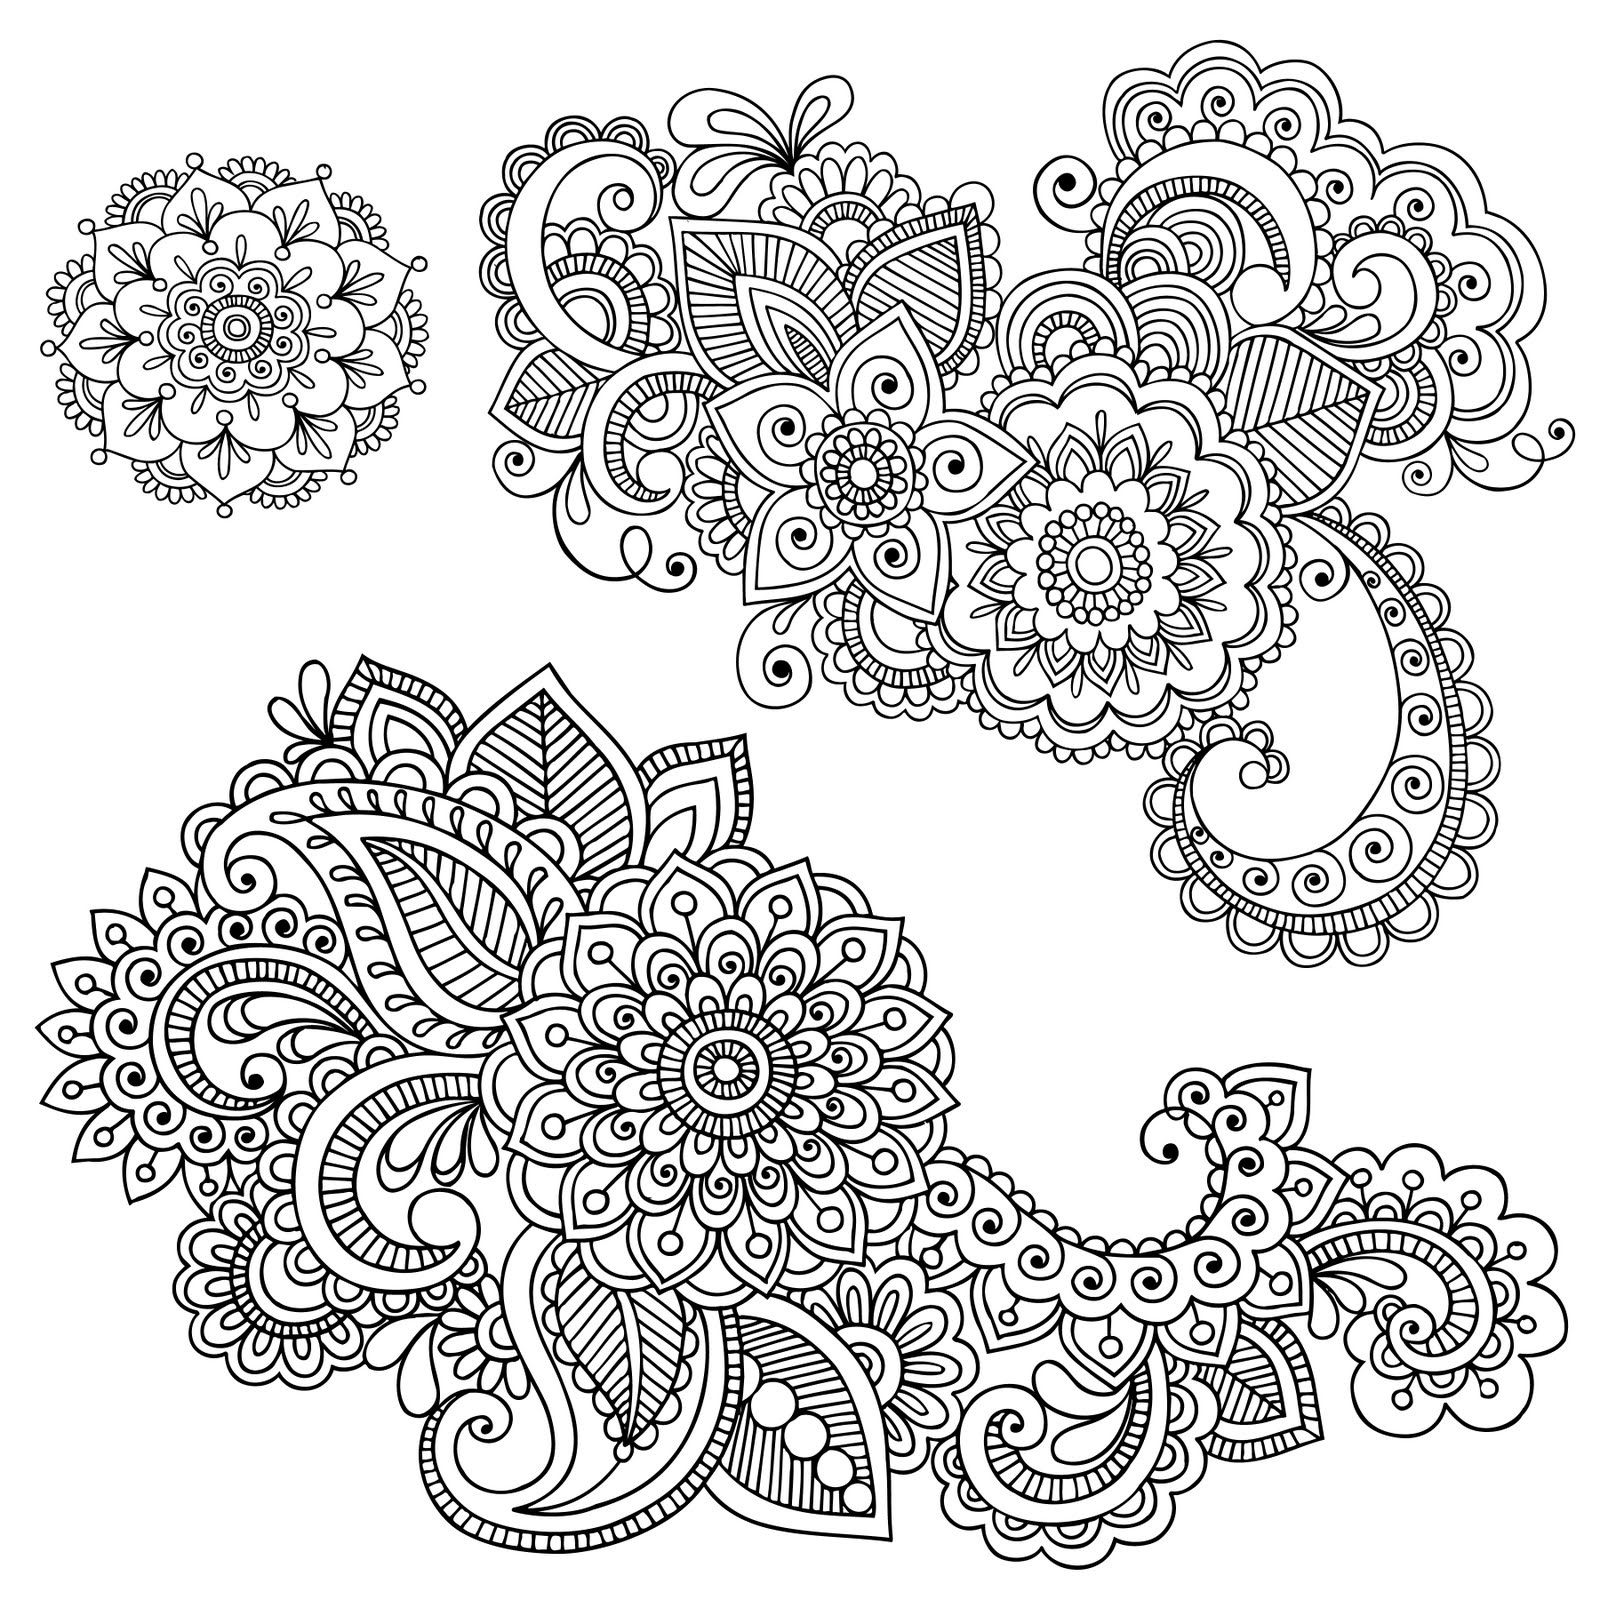 Coloring pages henna - Tattoos And Body Art